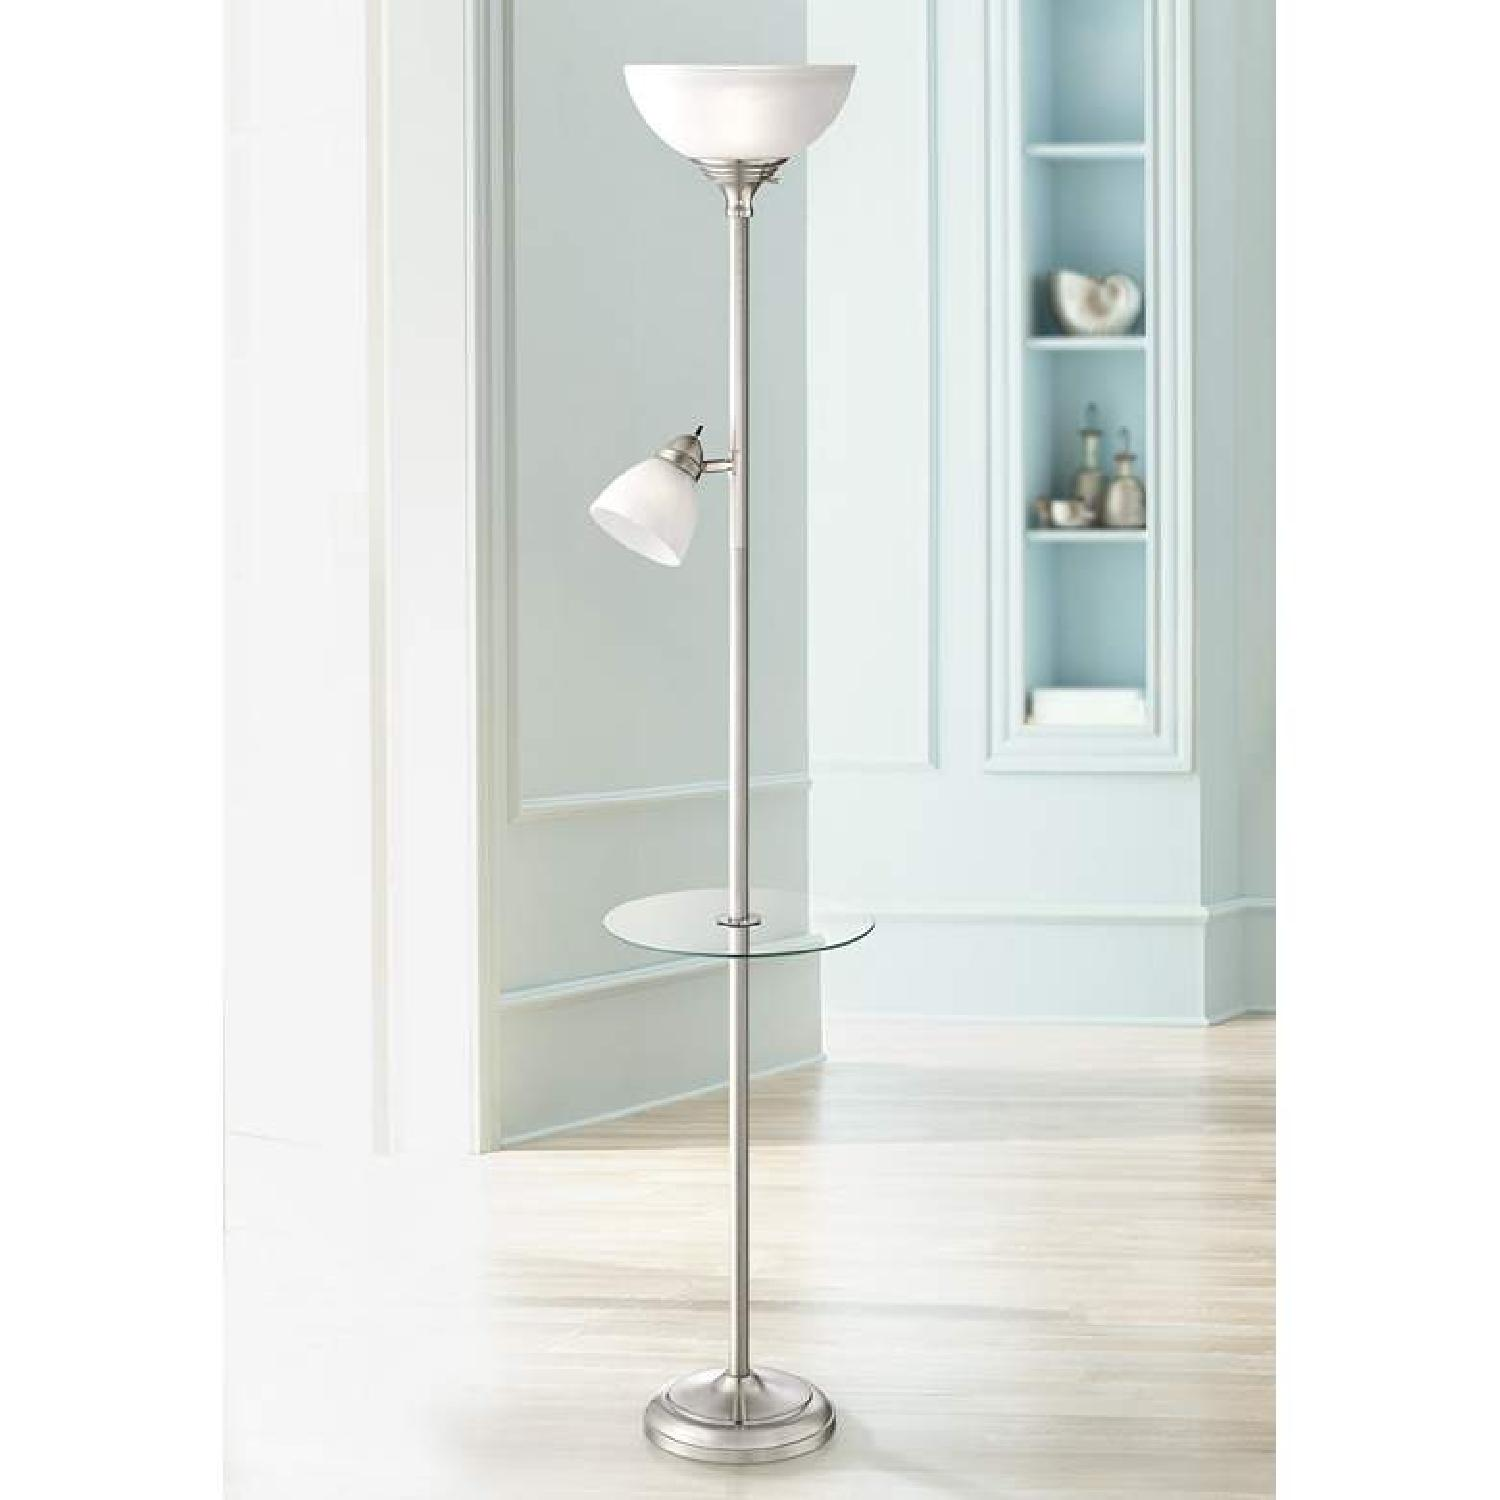 Torchiere Floor Lamp w/ Table & Reading Light - image-2